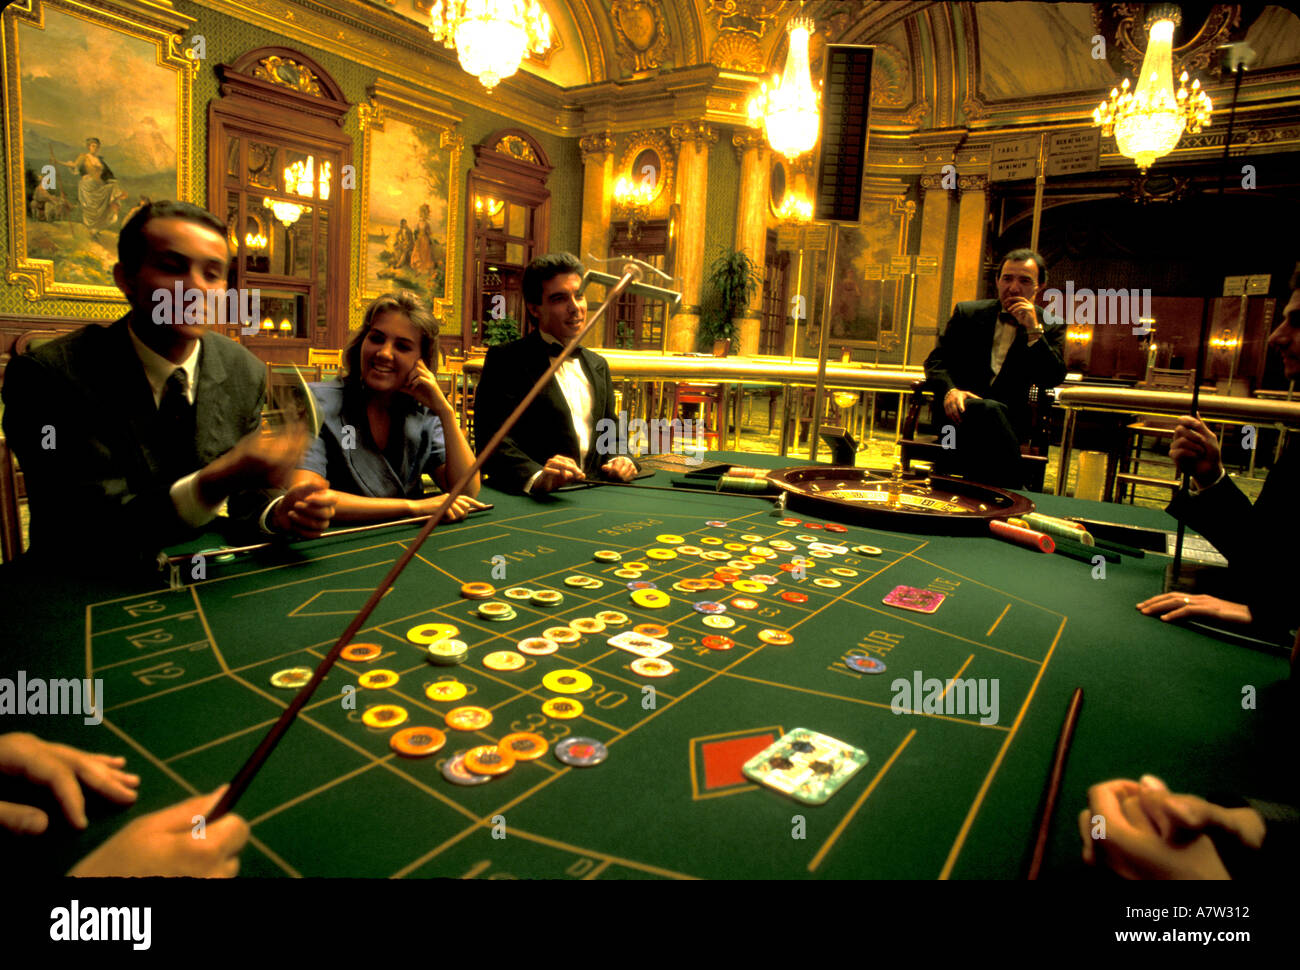 dress code casino di montecarlo